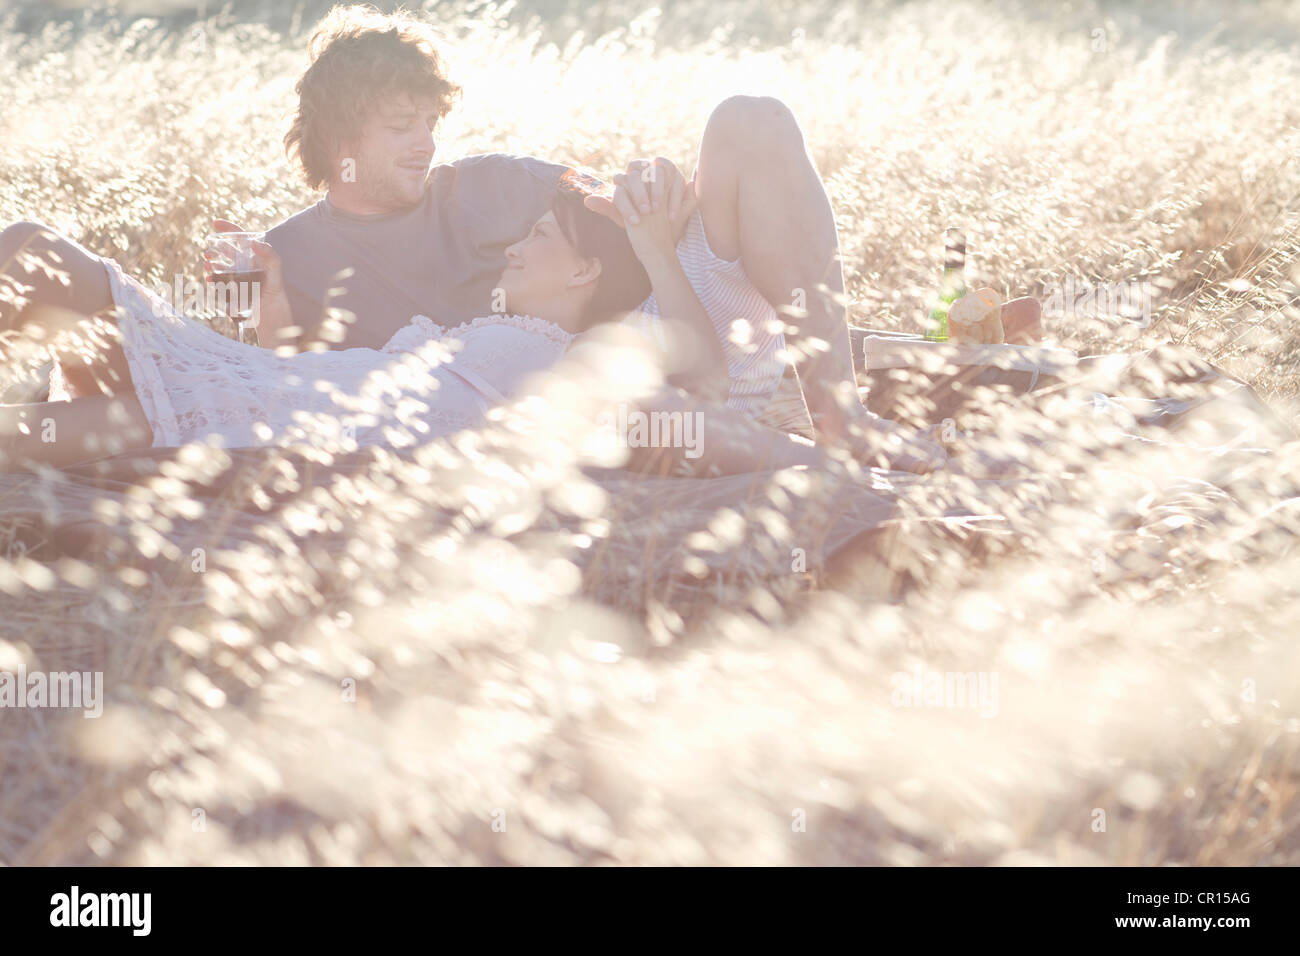 Couple picnicking in wheatfield - Stock Image